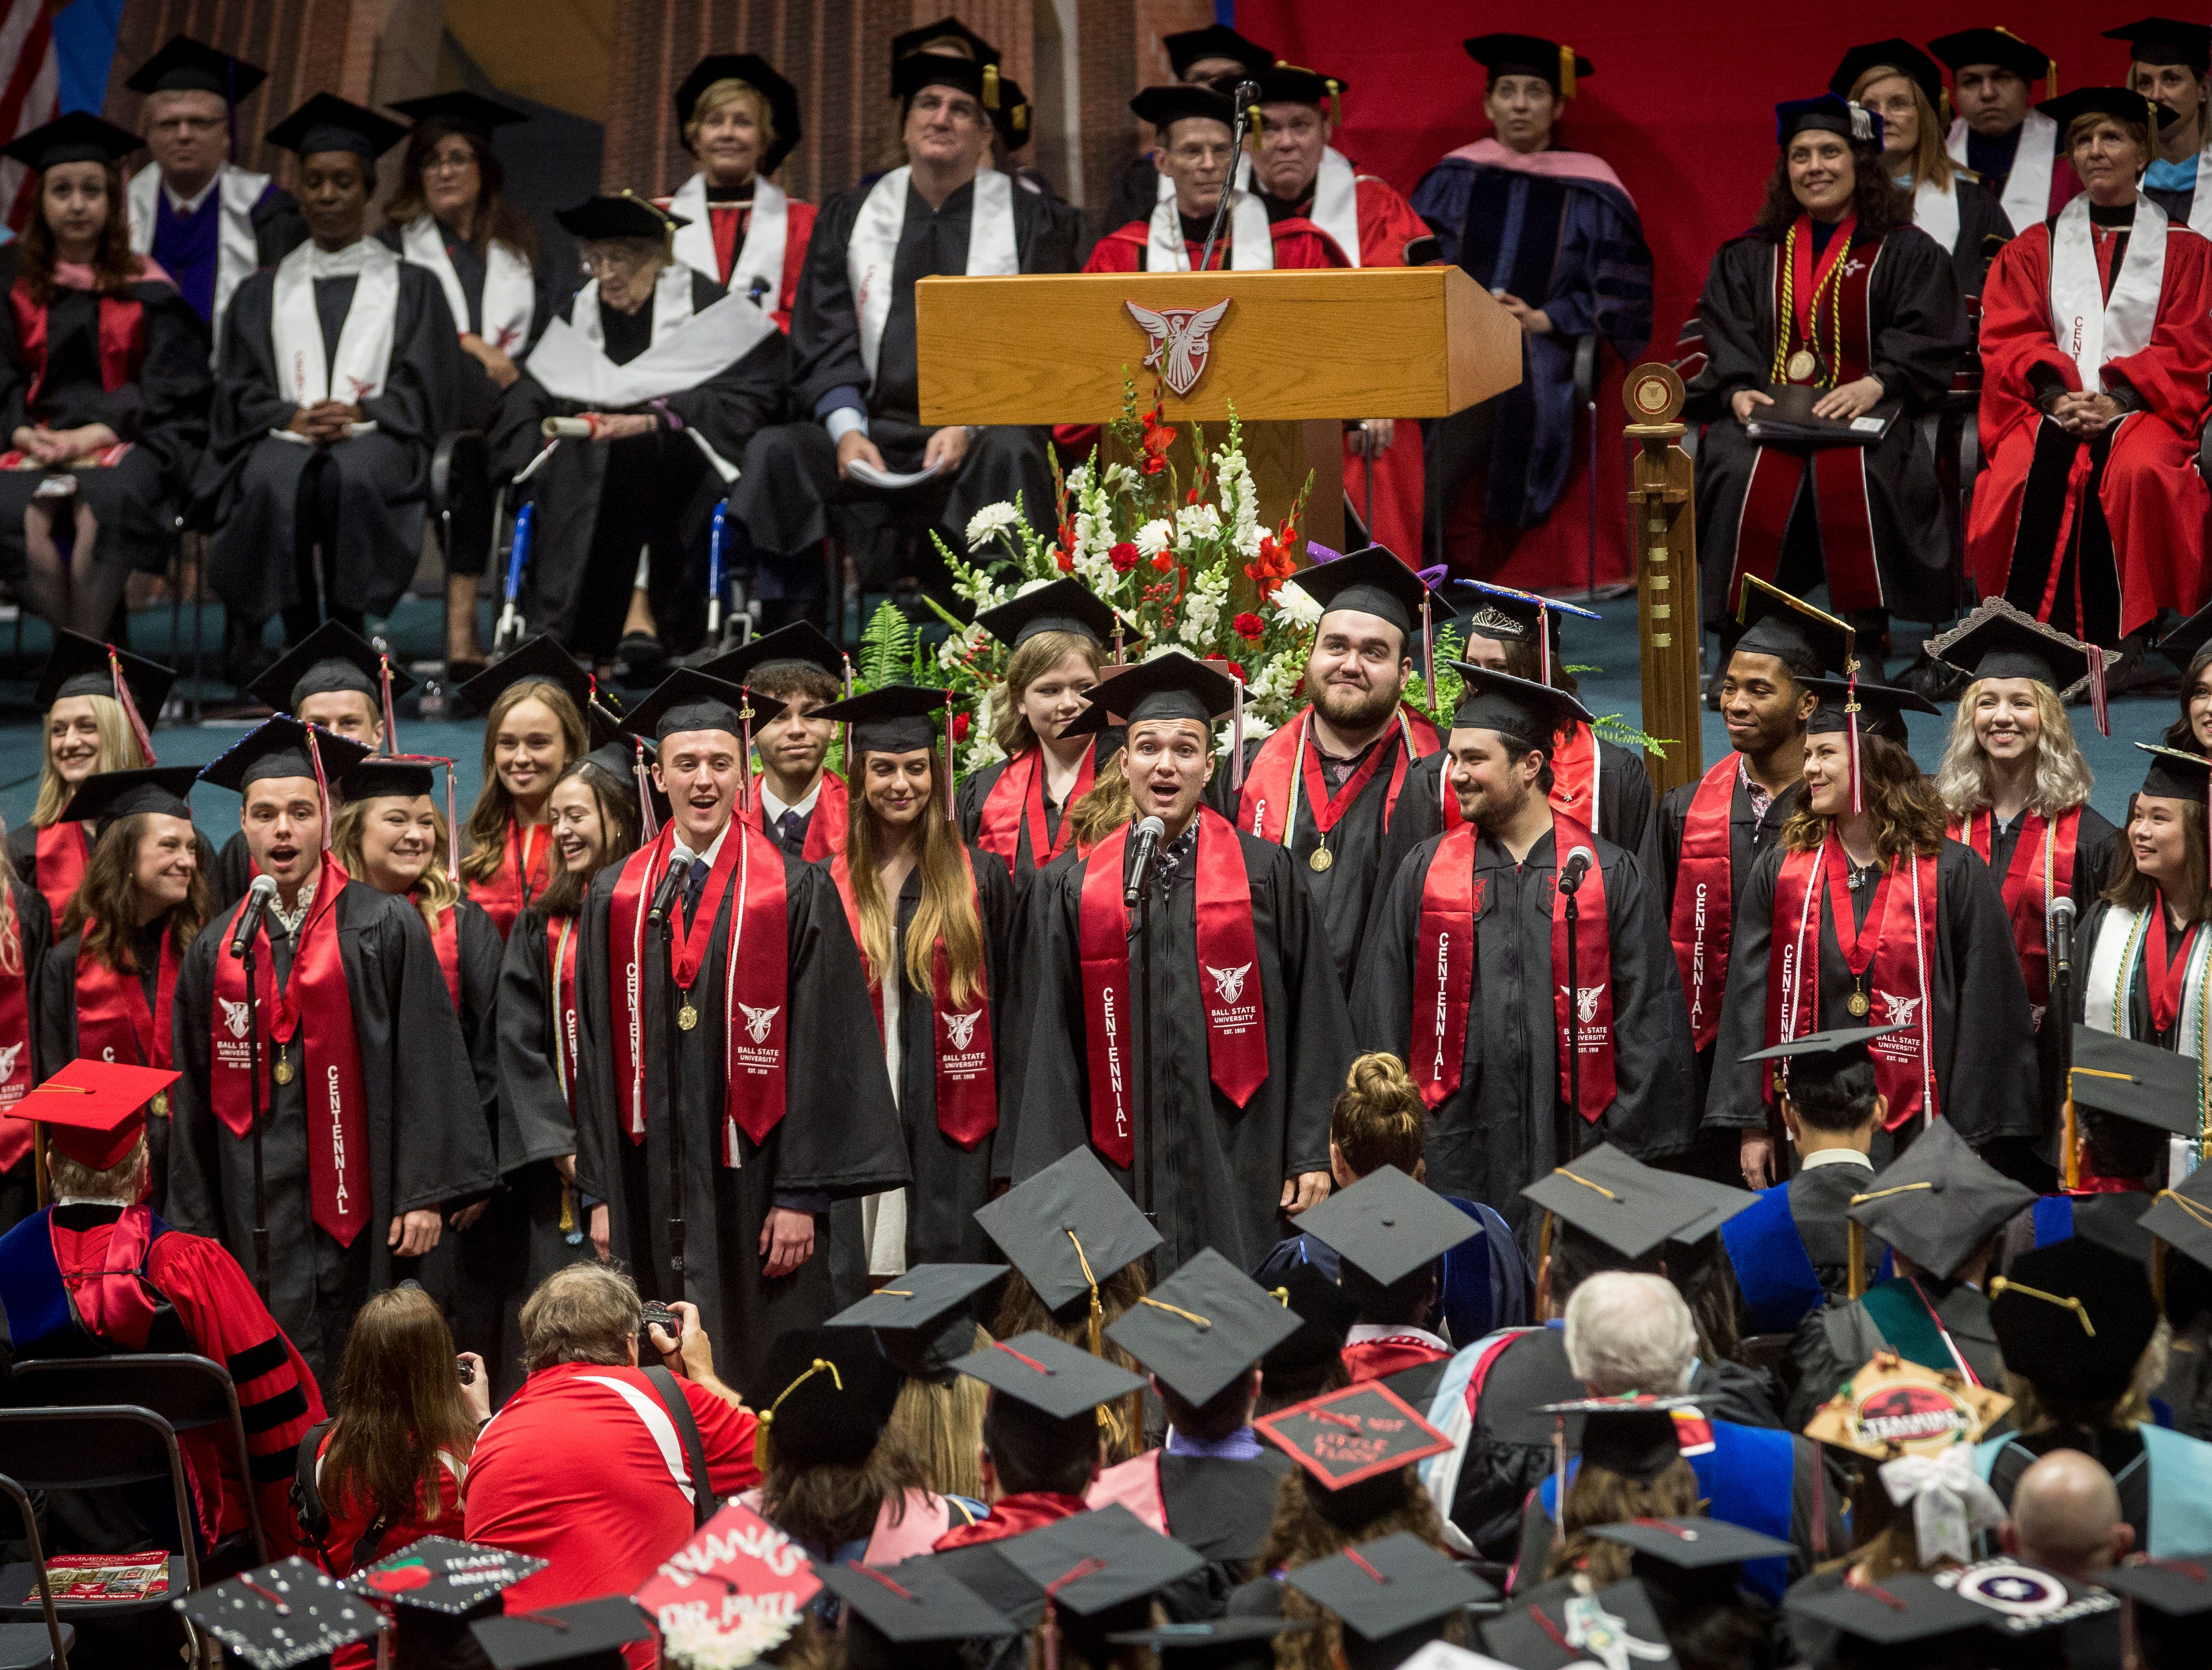 Ball State students provide a musical number commissioned in honor of the university's centennial on May 4 during Ball State University's Spring Commencement inside Worthen Arena.